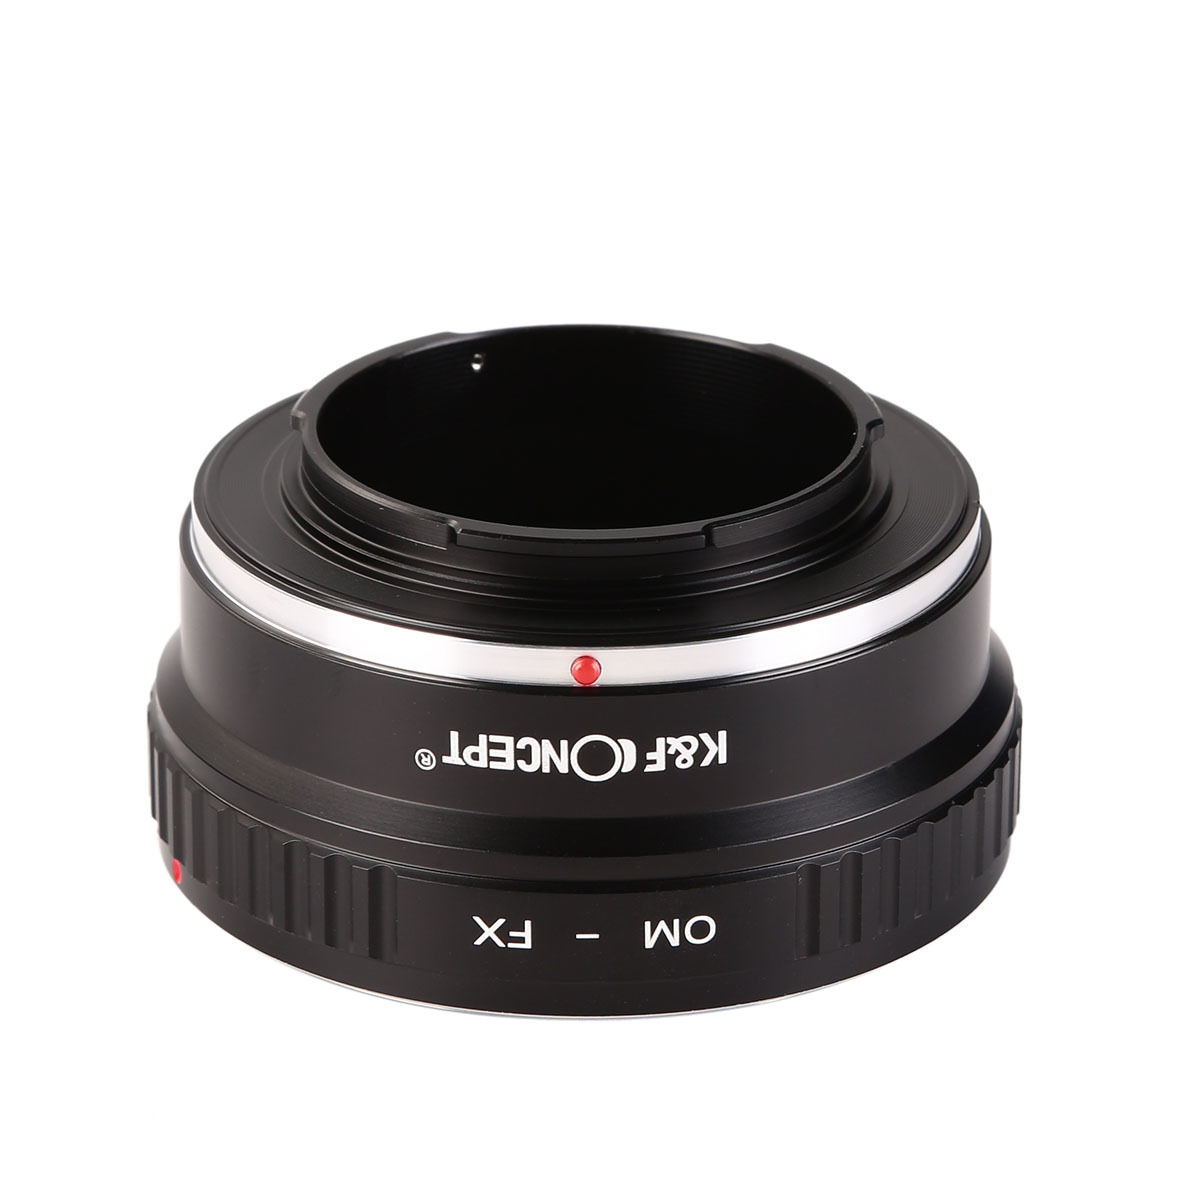 Amopofo OM-FX Lens Adapter for Olympus OM Lens to Fuji X-Mount Adapter XF XC Fujifilm E2 M1 A1 Pro1